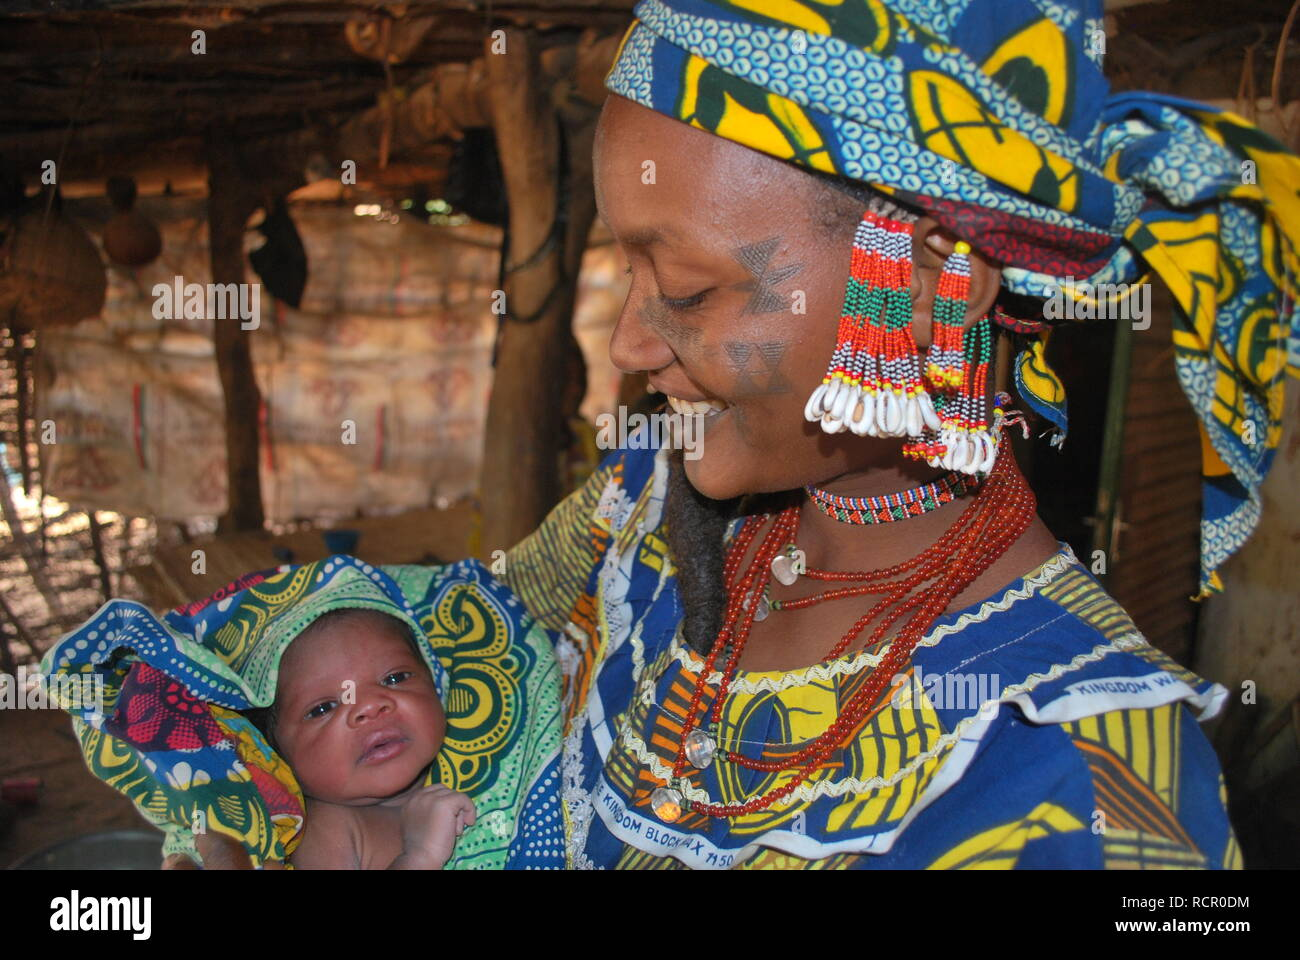 A young Fulani mother with traditional scars and jewellery cradling her newborn daughter in Niger, Africa. Stock Photo